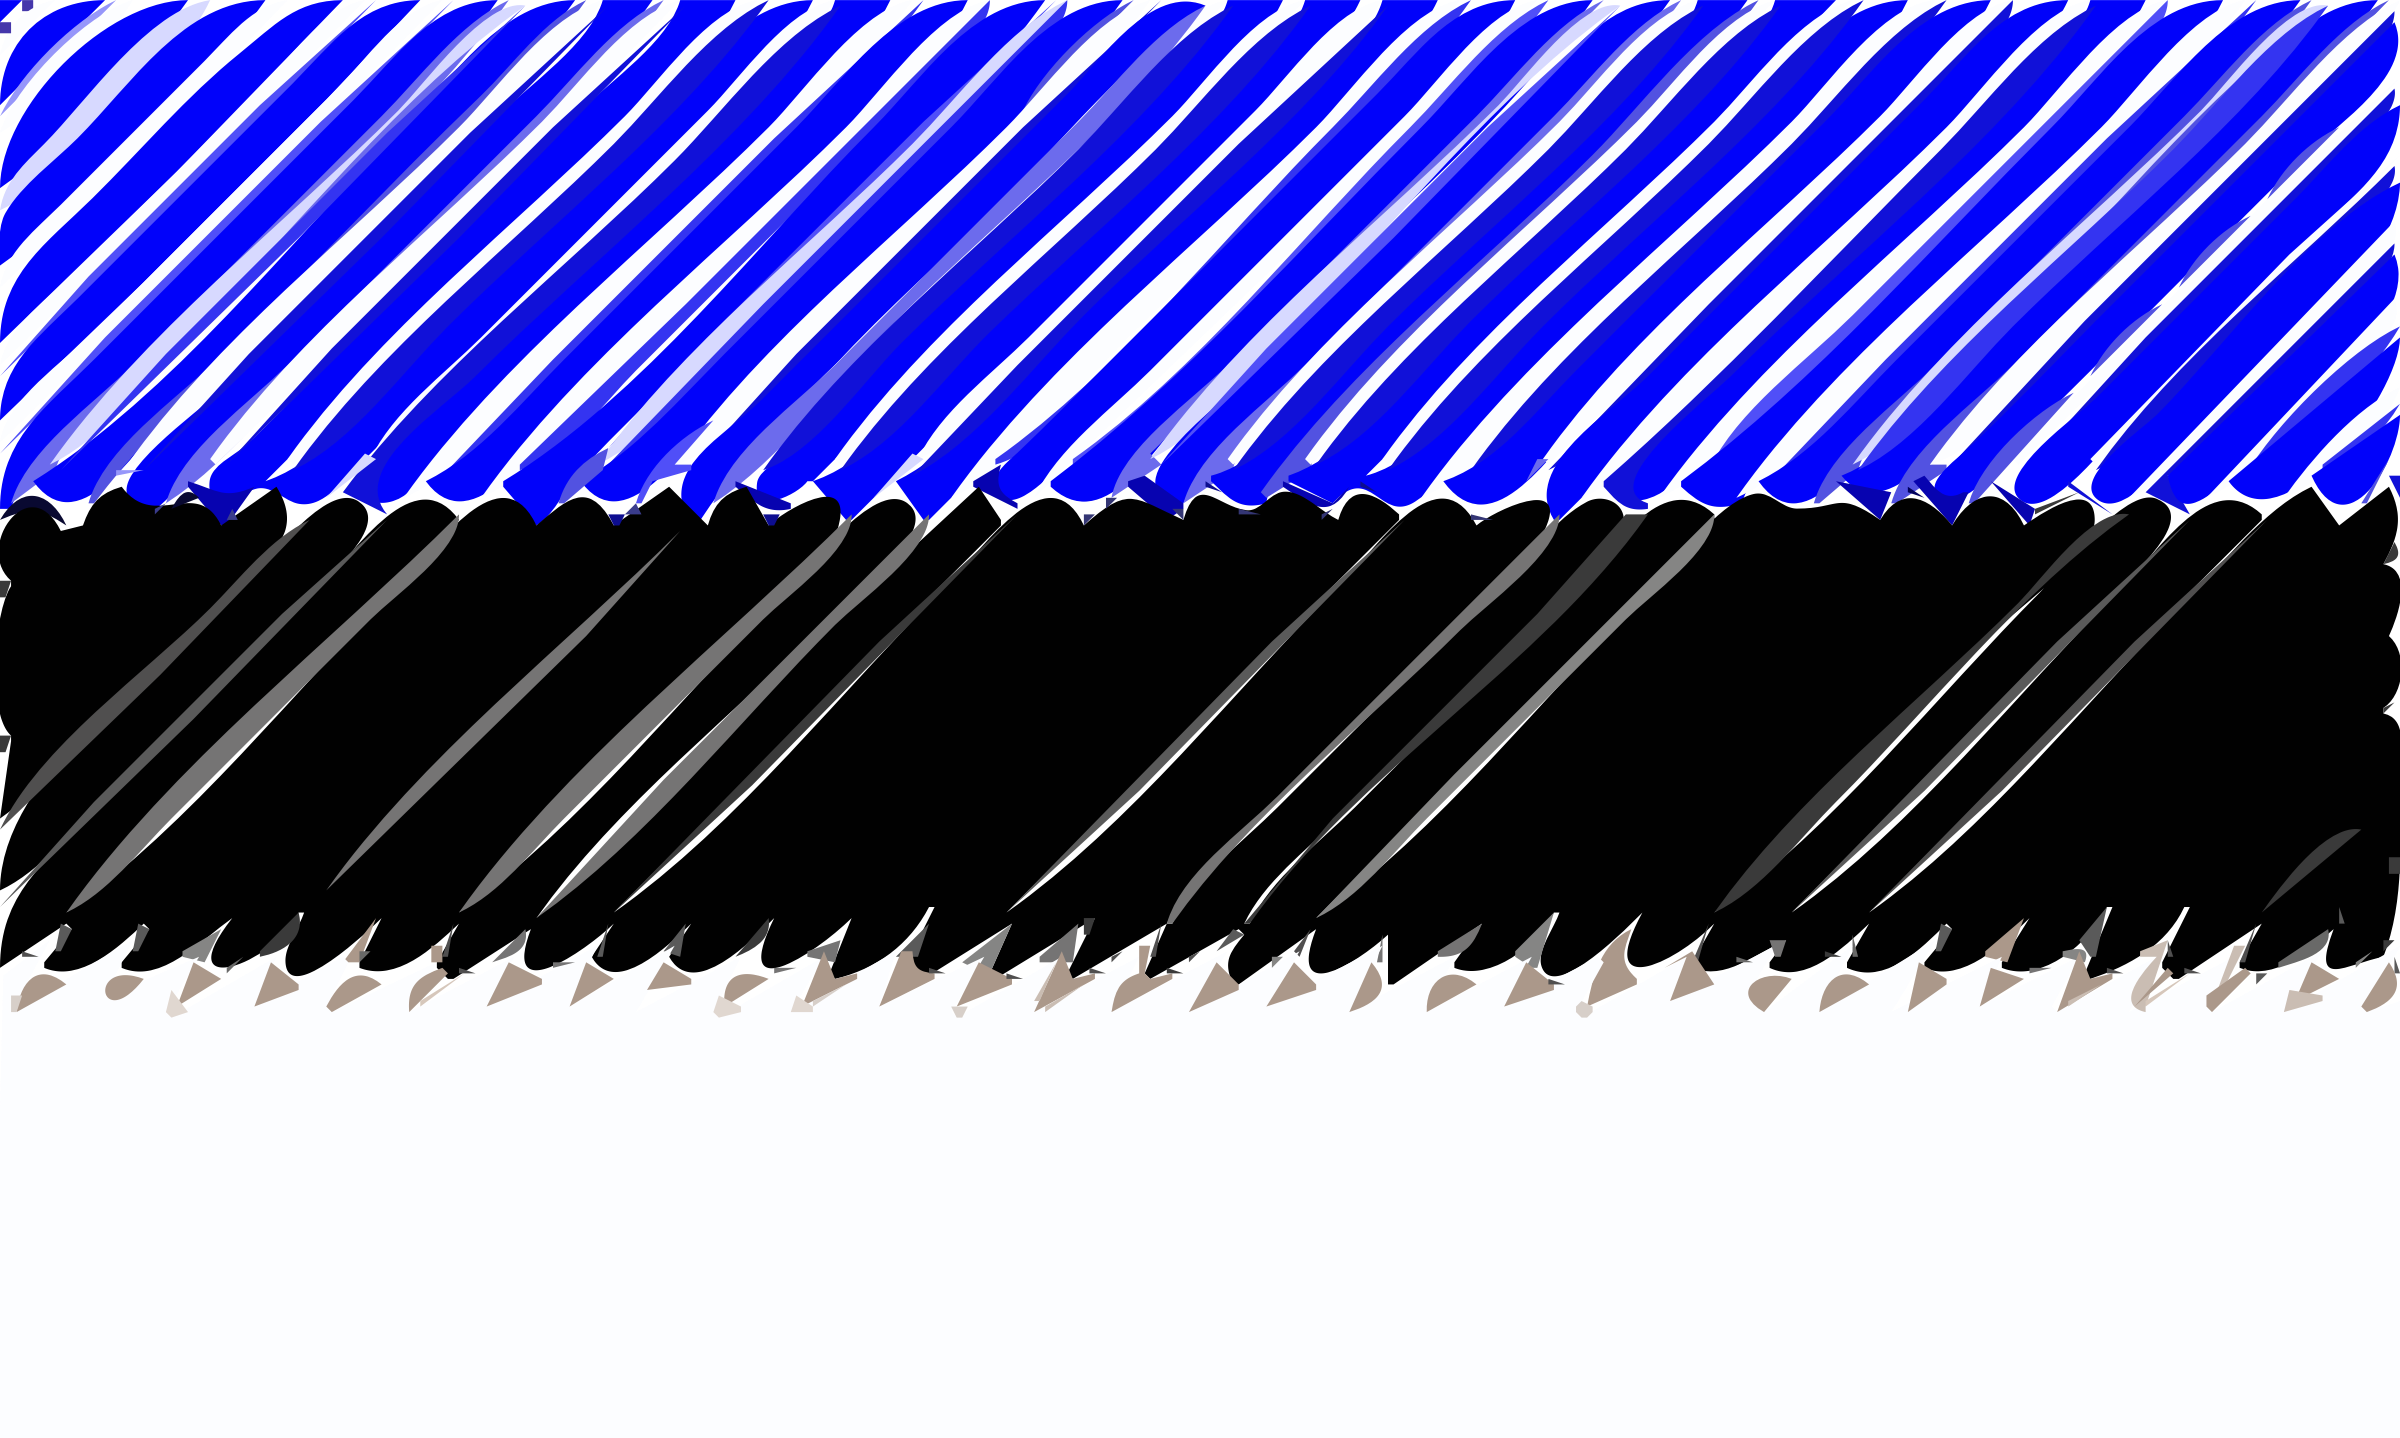 Estonia flag linear by Joesph